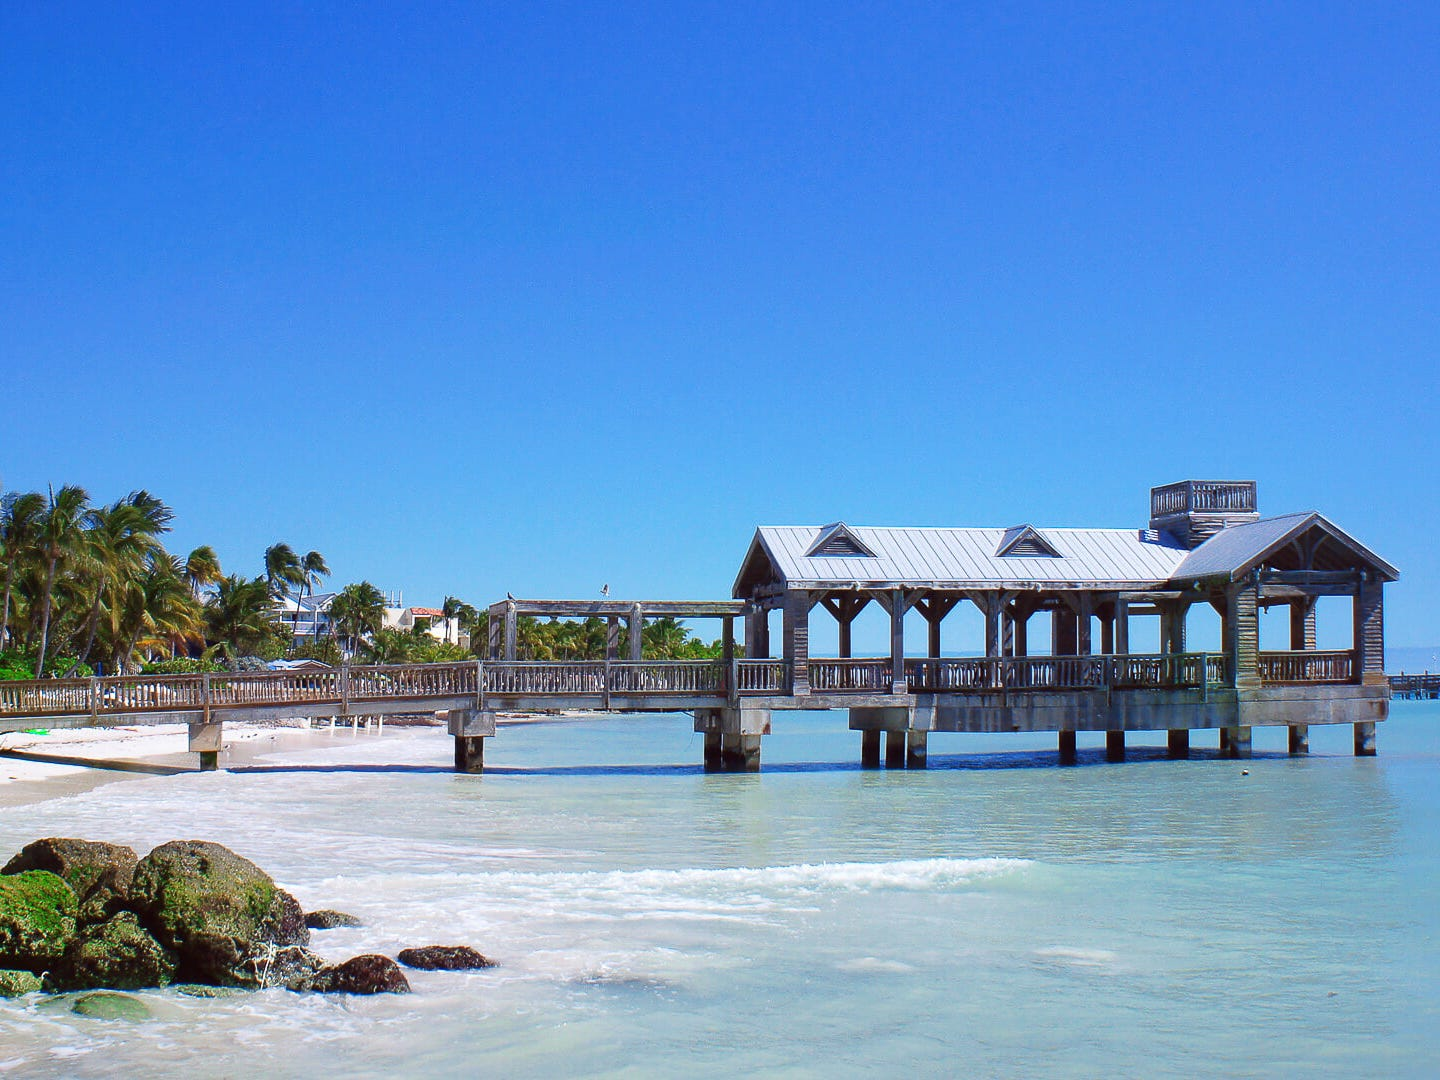 No. 3: Key West, Florida. Thanksgiving trip cost: $1,760. Christmas trip cost: $1,993. Expect to shell out big bucks to fly to Key West during Thanksgiving. With an average round-trip flight cost of $806, it's the second-most expensive destination to get to of all the destinations on this list. It's also the third-most expensive destination to fly to during Christmas, when the average round-trip flight costs $577.